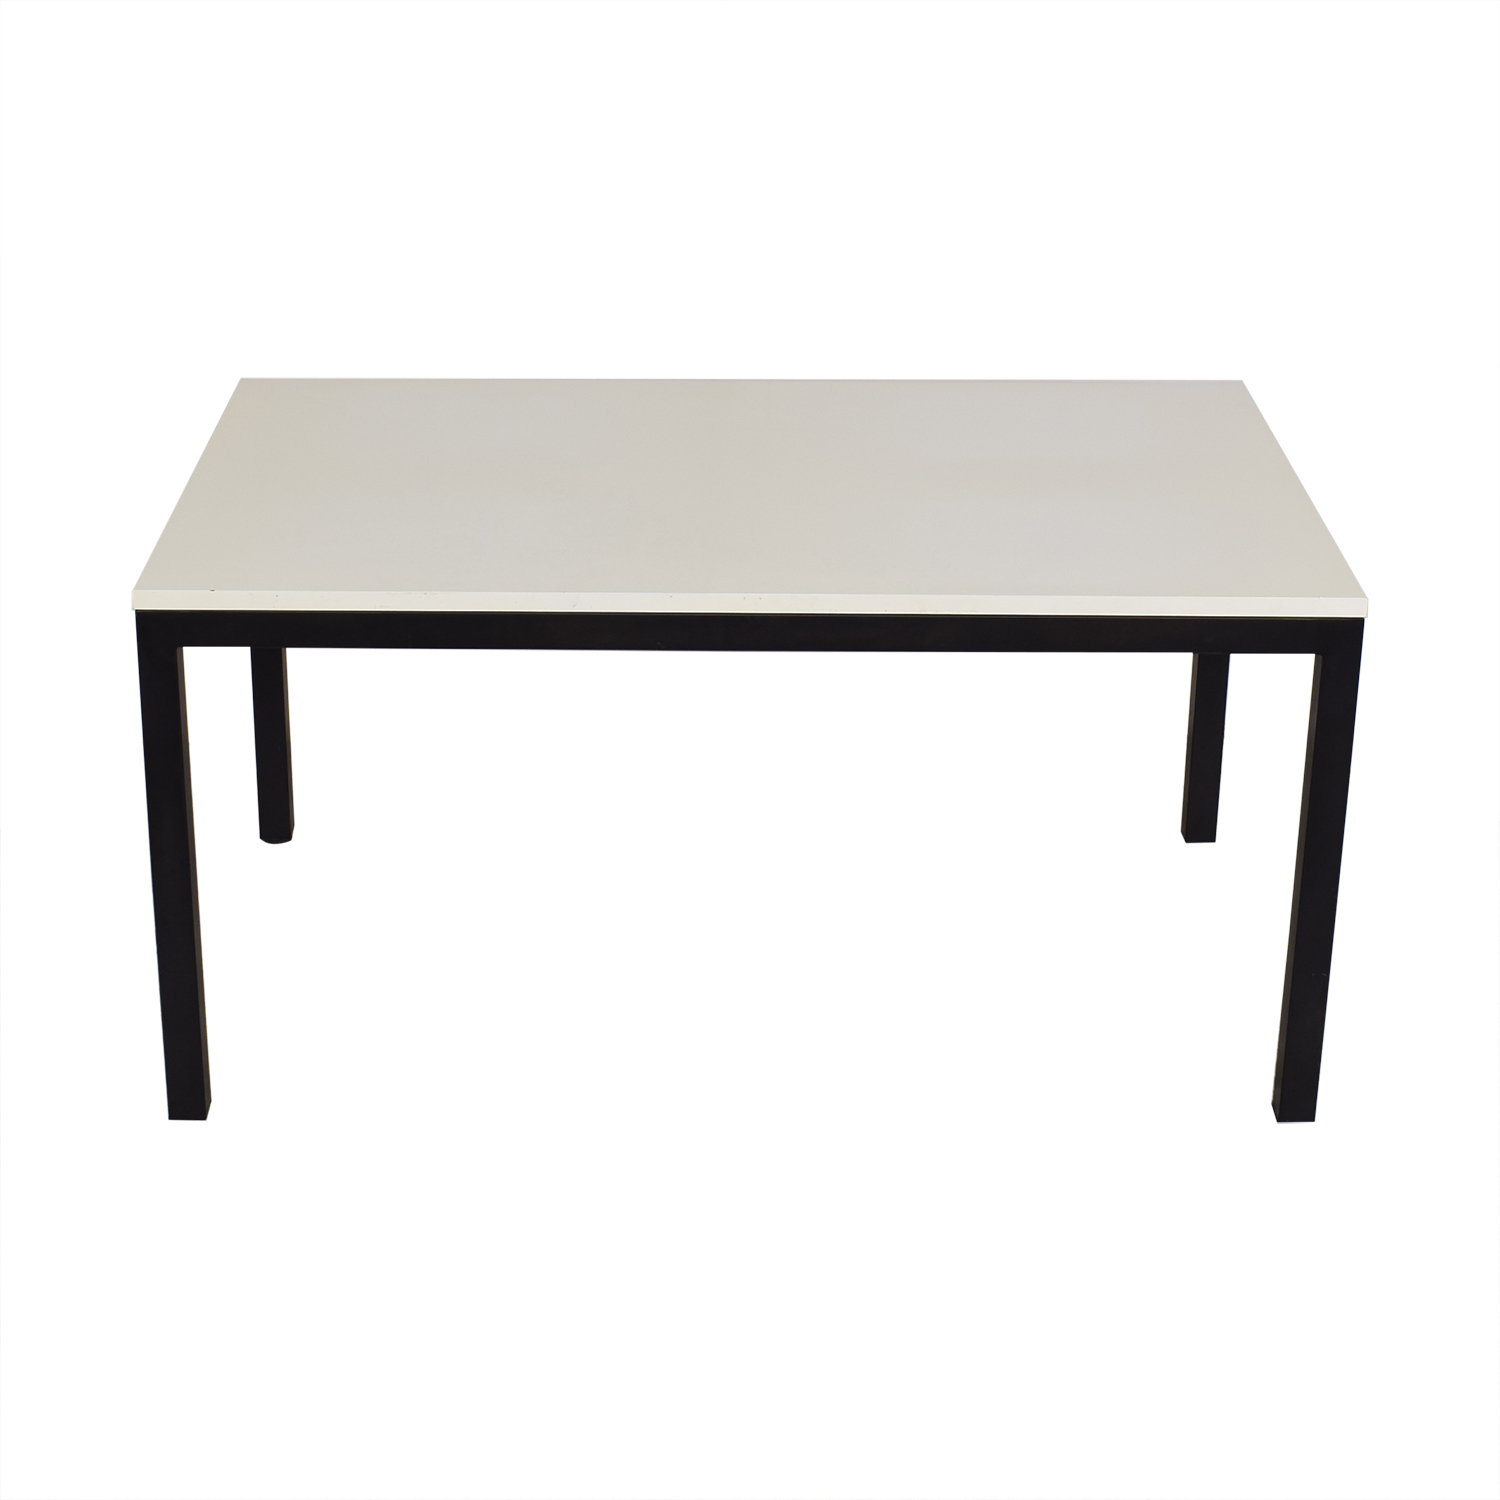 buy Crate & Barrel Parsons Dining Table Crate & Barrel Tables